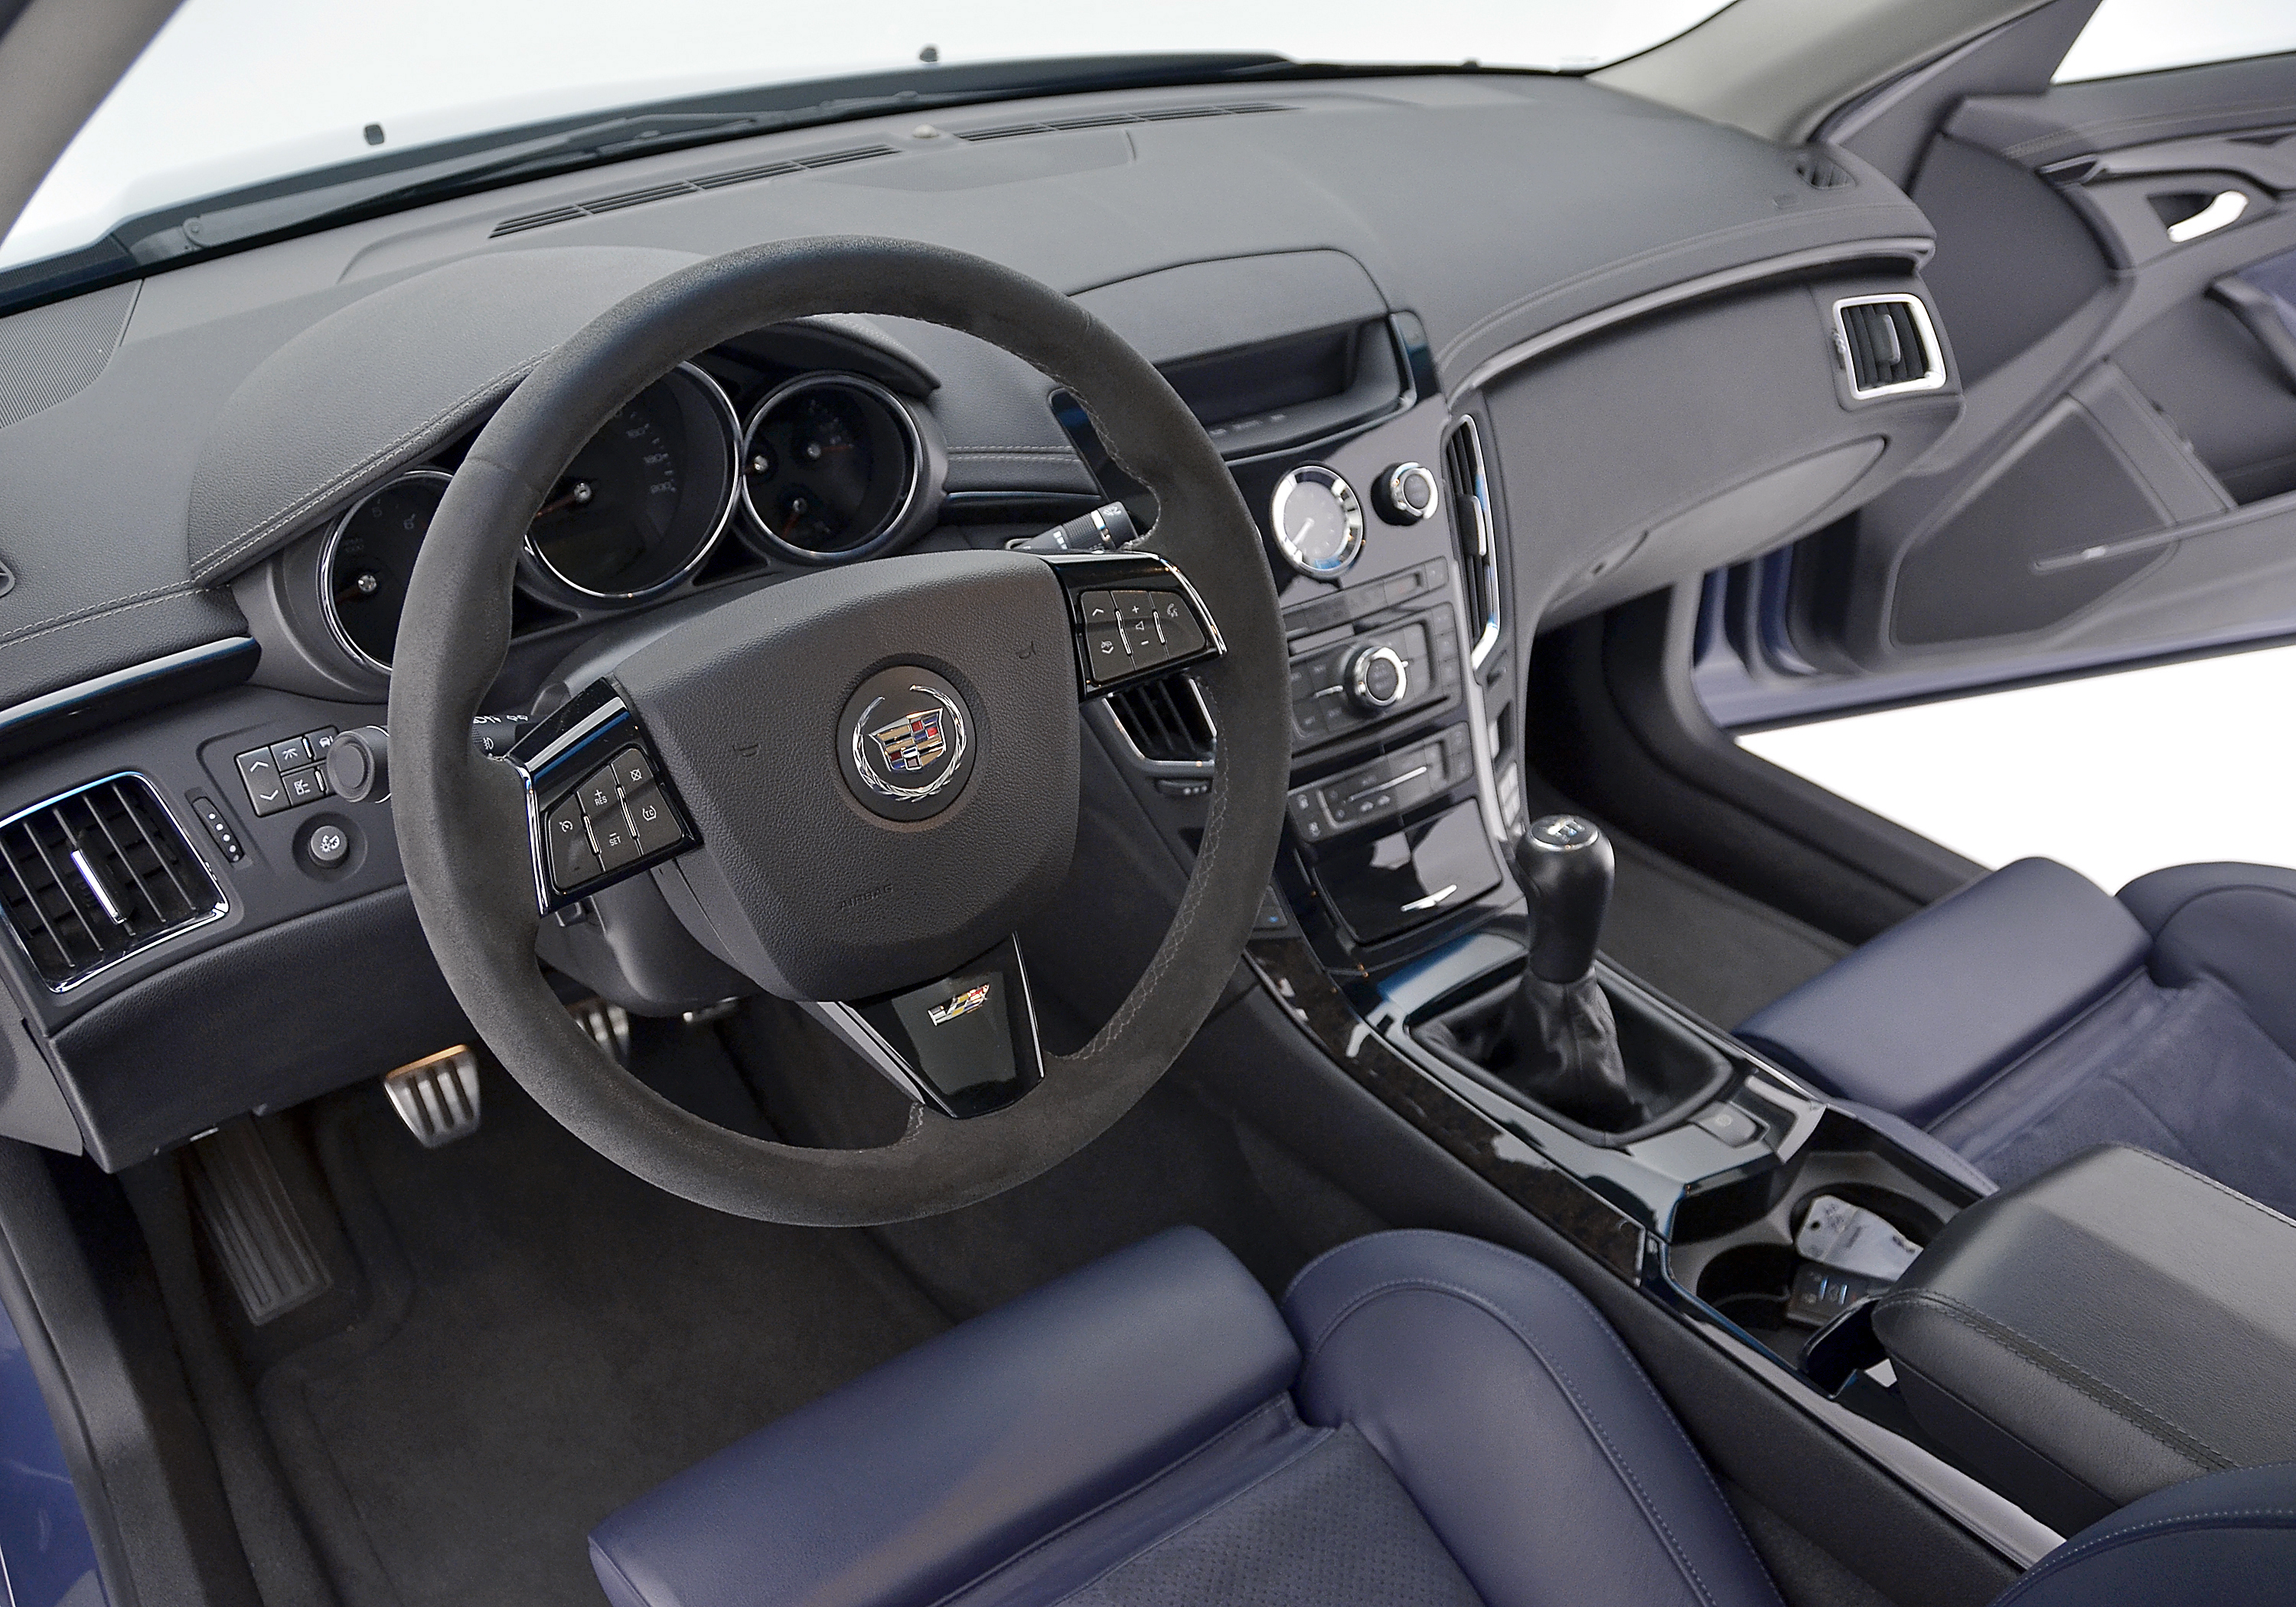 grown cadillac escalade english the essay popularity view front in already has interior